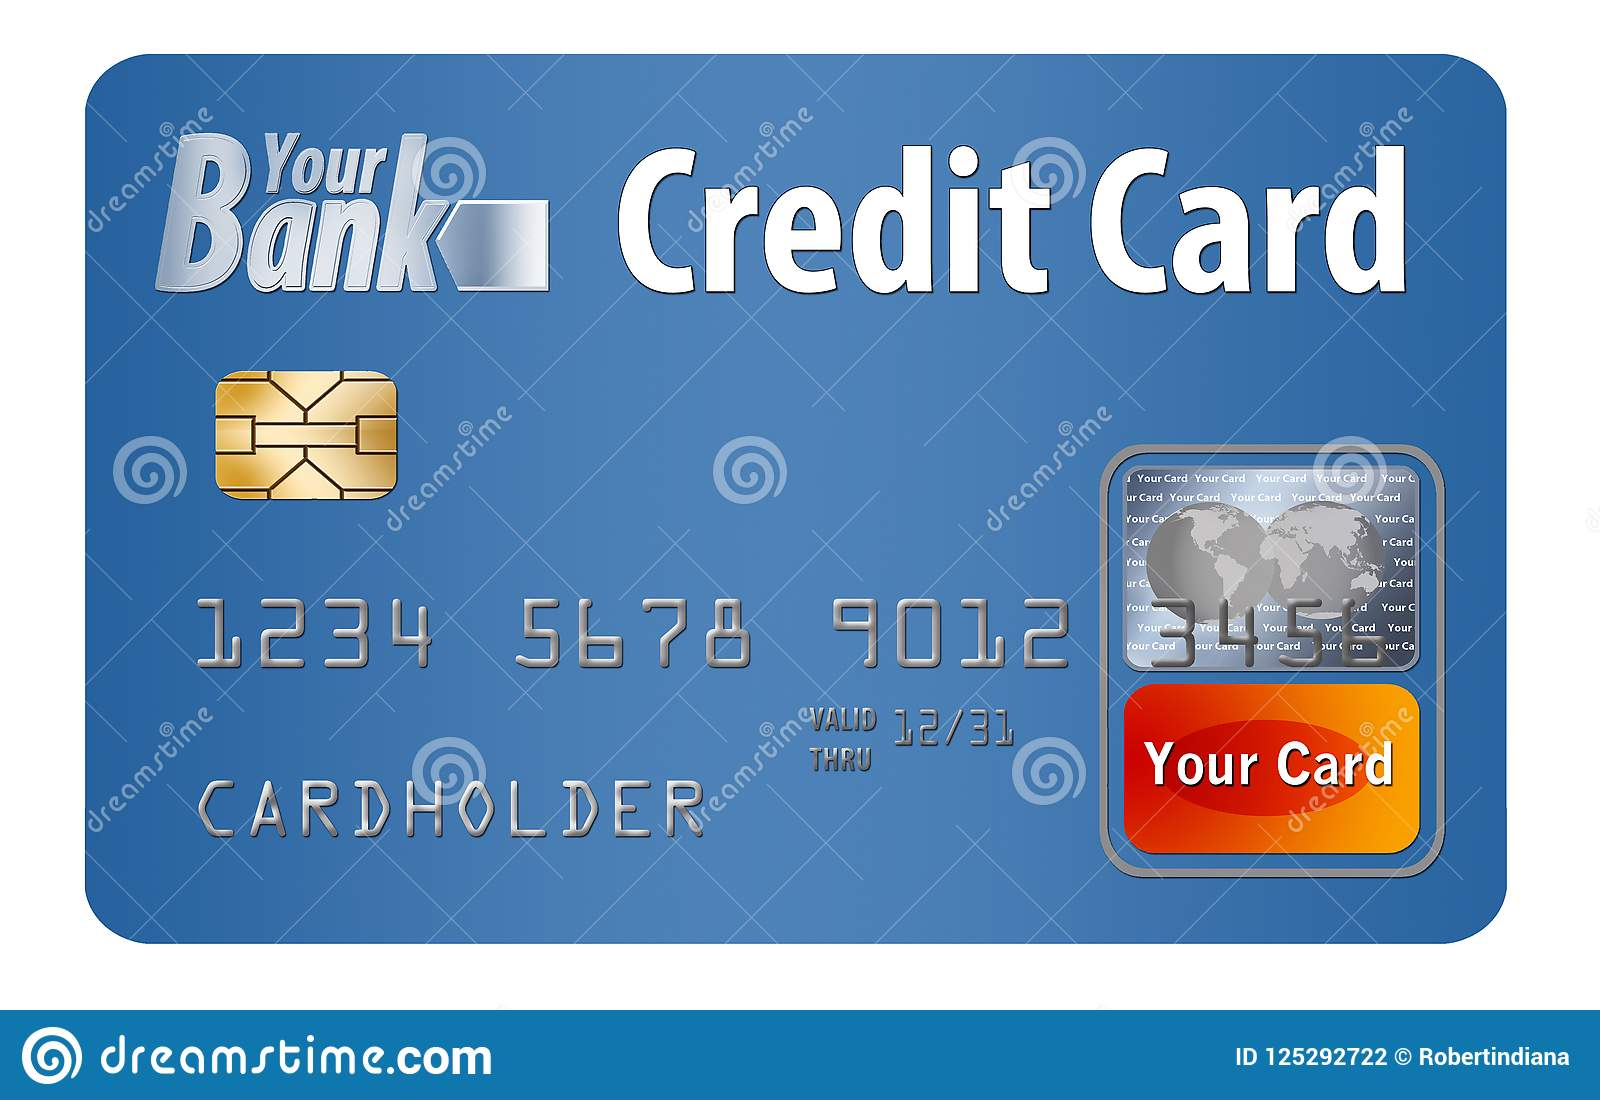 This Is A Credit Card It Is An Illustration With Generic